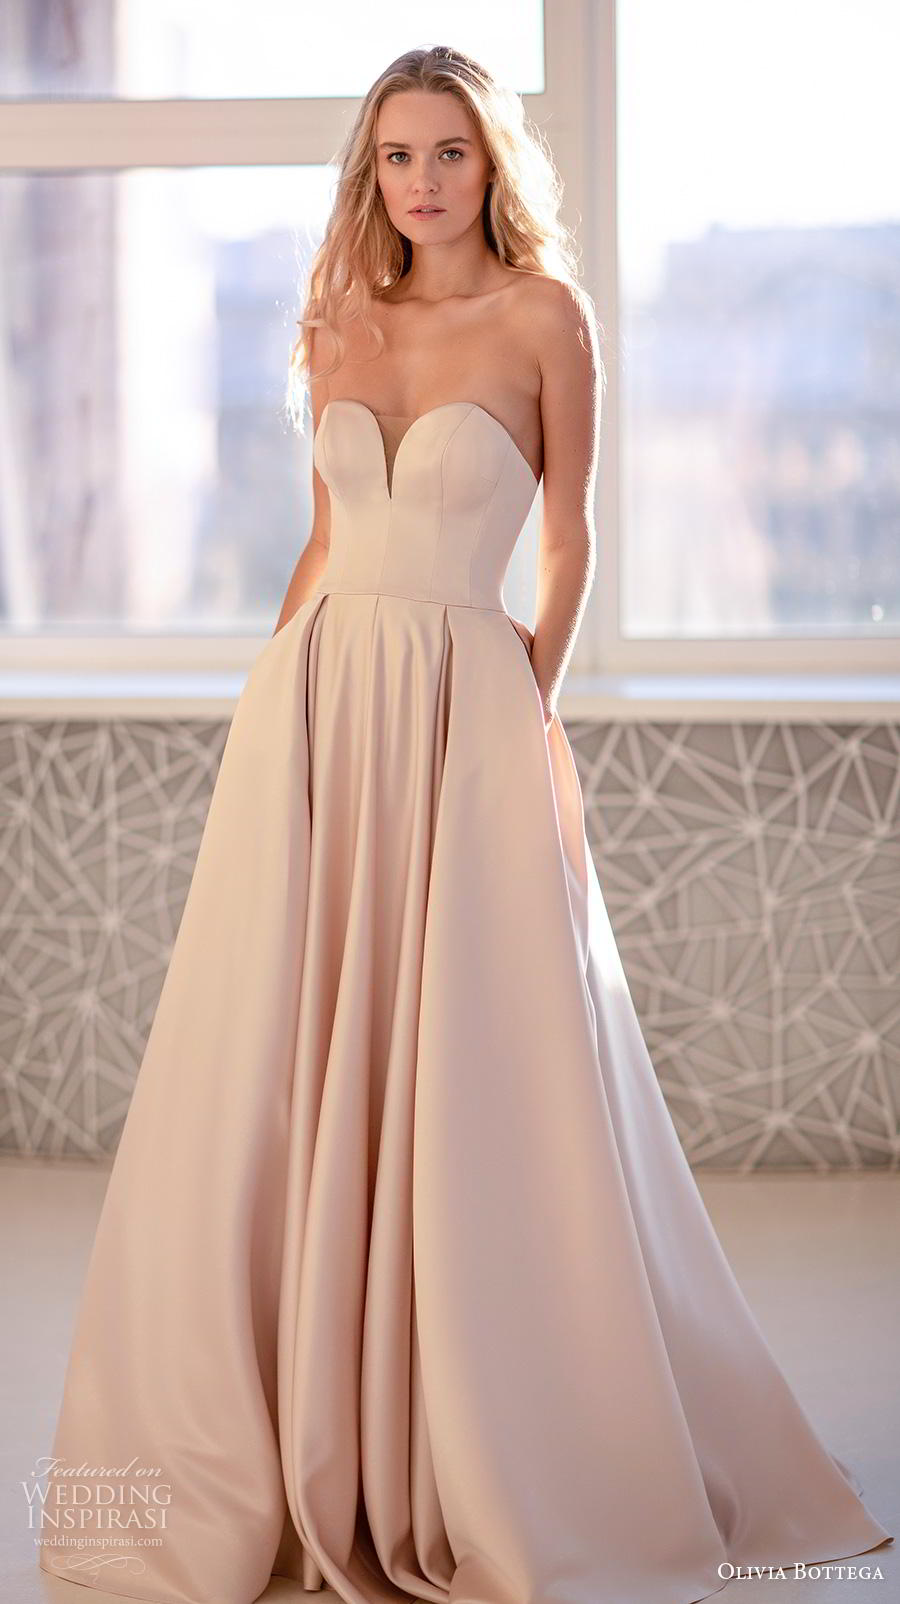 olivia bottega 2020 bridal strapless sweetheart neckline simple minimalist romantic a  line wedding dress with pockets sweep train (6) mv